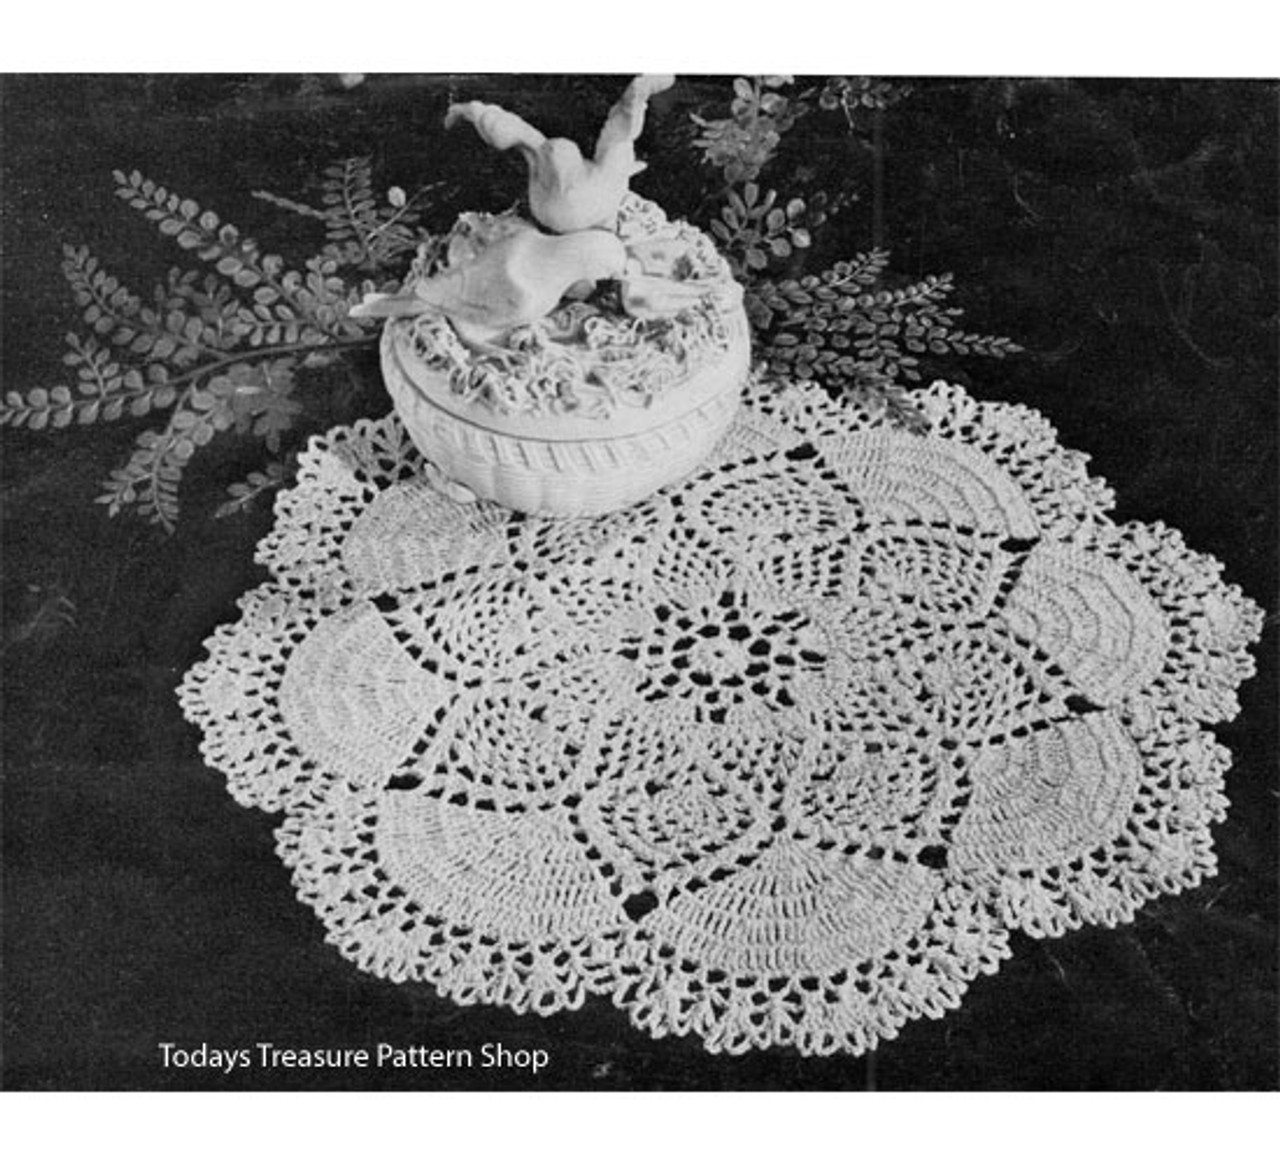 Vintage Dove Doily Crochet Pattern from American Thread.